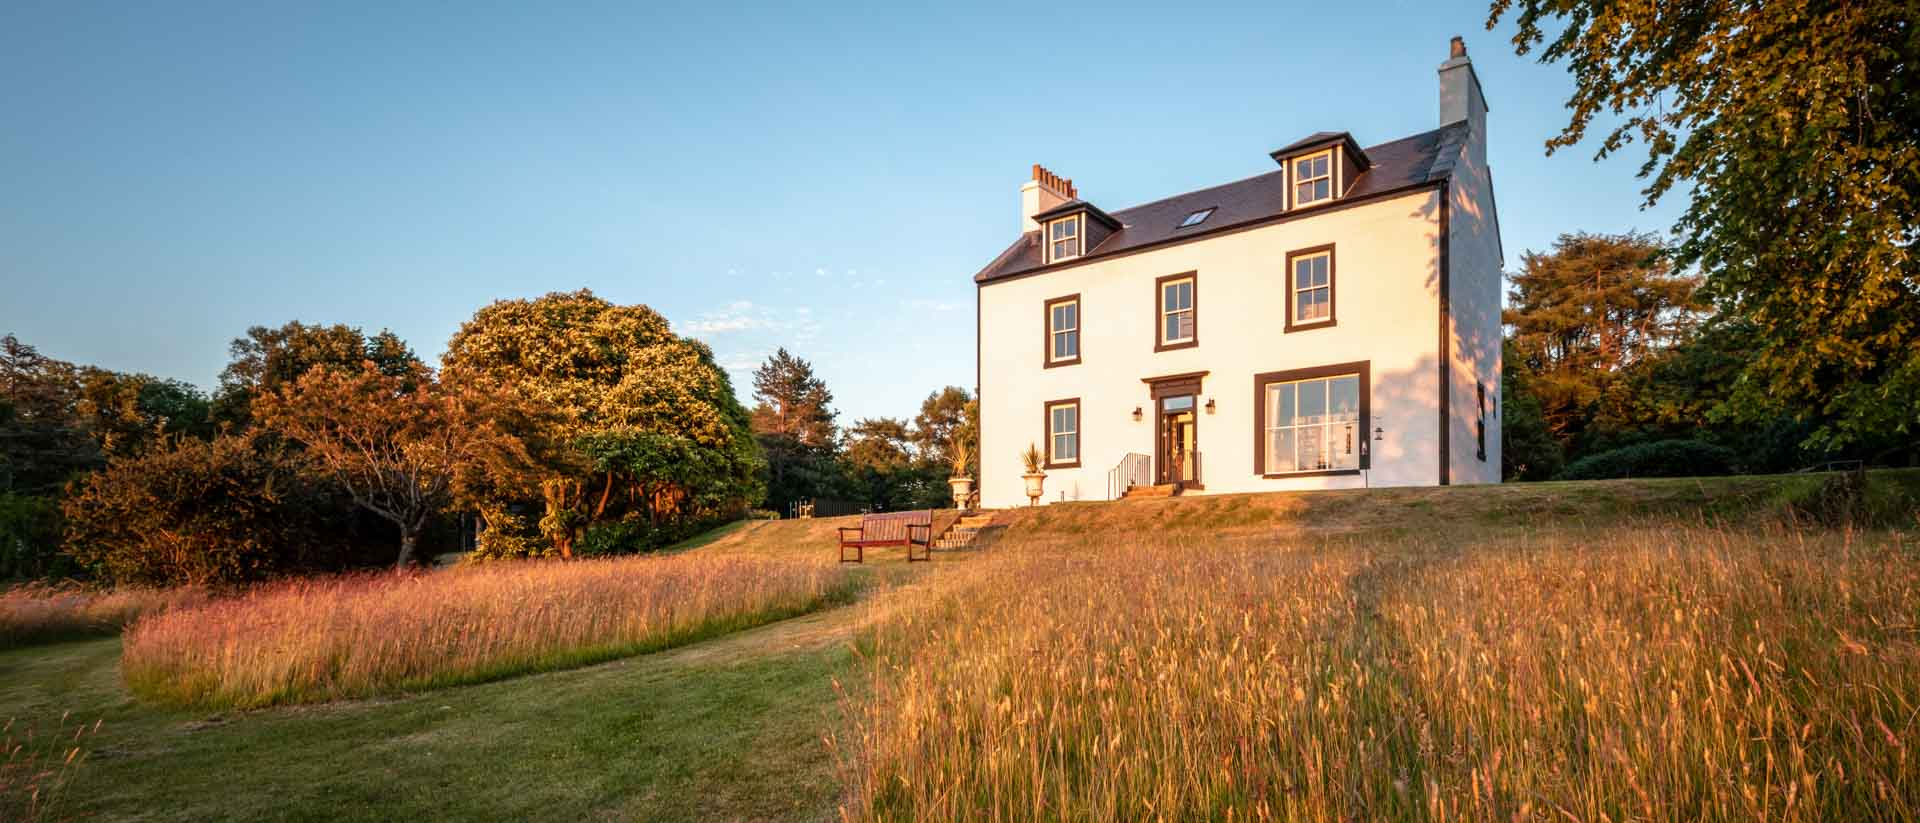 Exquisite guesthouse accommodation and delightfulsmallrestaurant at Craignure, on the Isle of Mull, Scotland